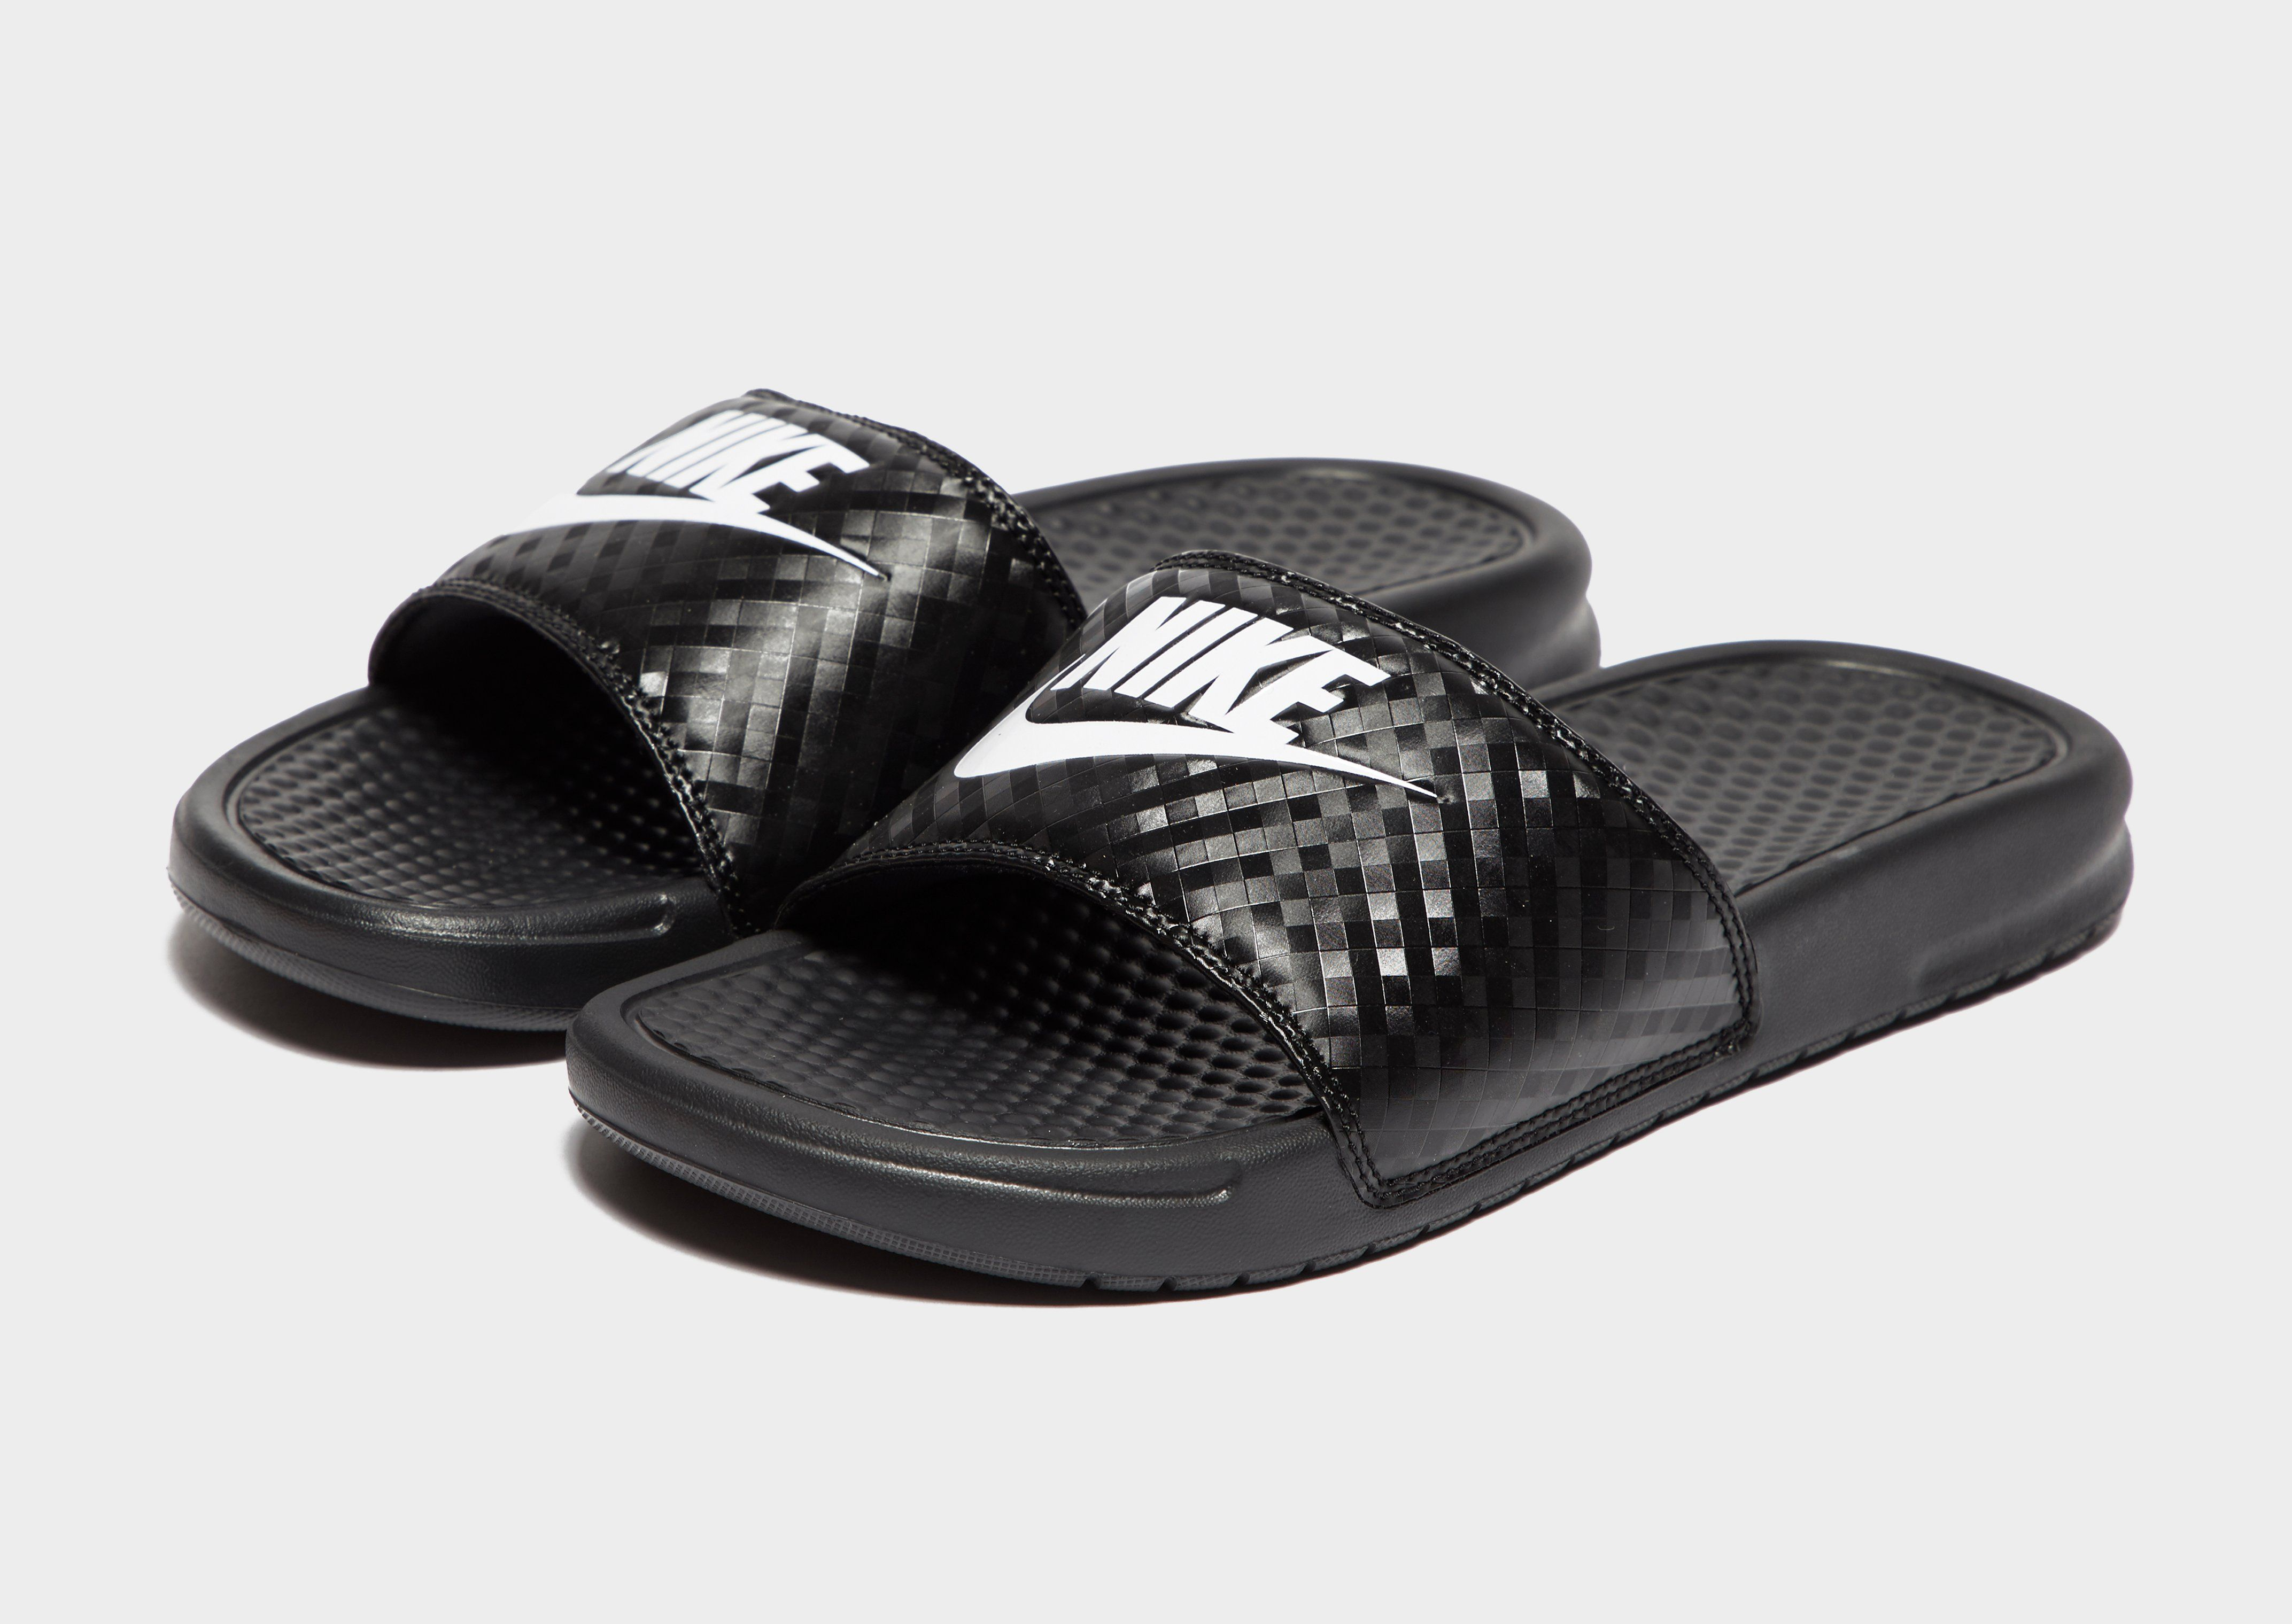 Nike Chanclas BENASSI JUST DO IT W para mujer